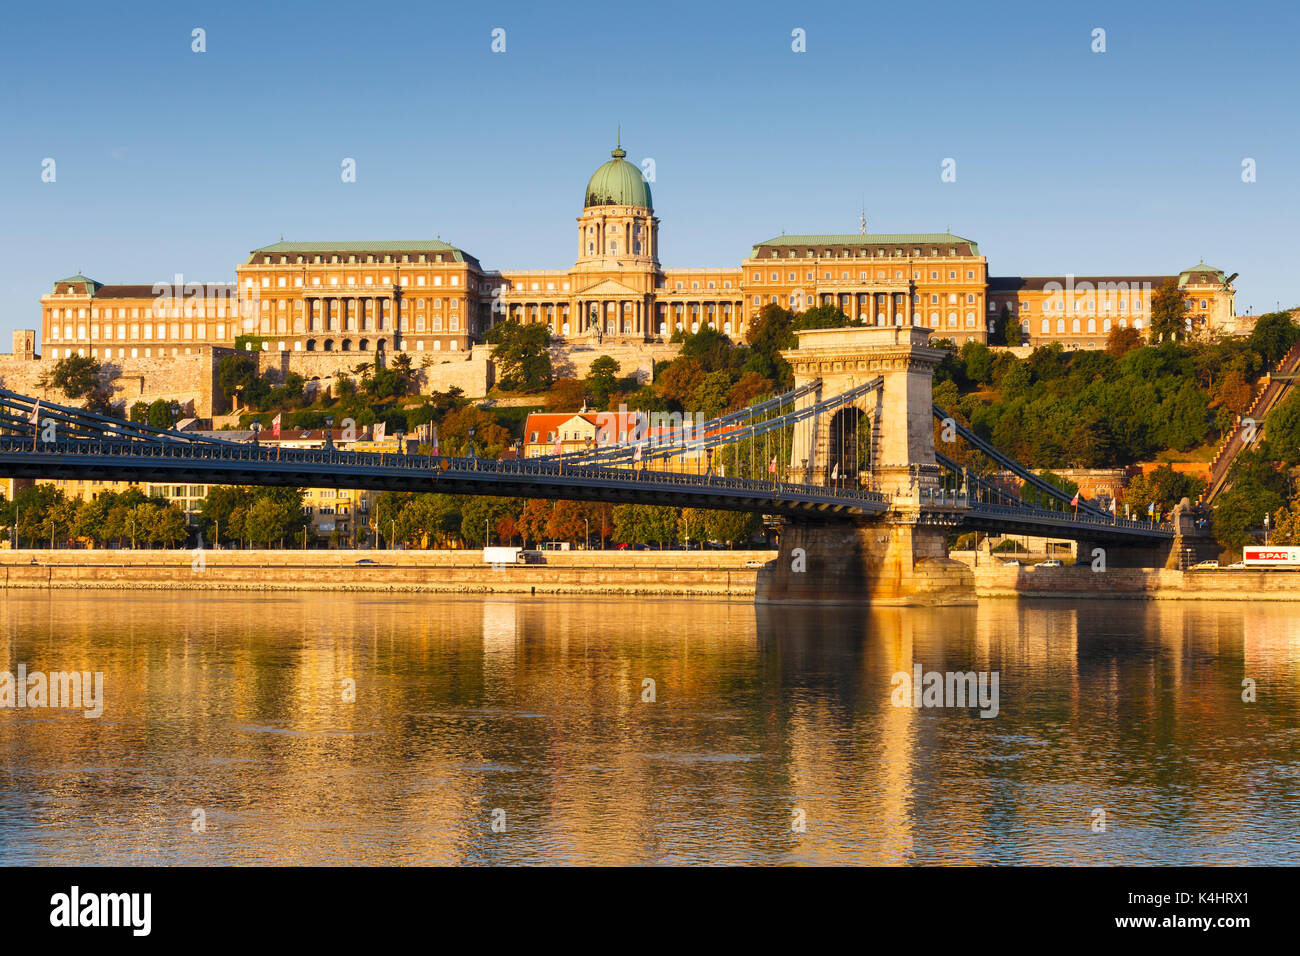 Morning view of city centre of Budapest over the river Danube, Hungary. - Stock Image